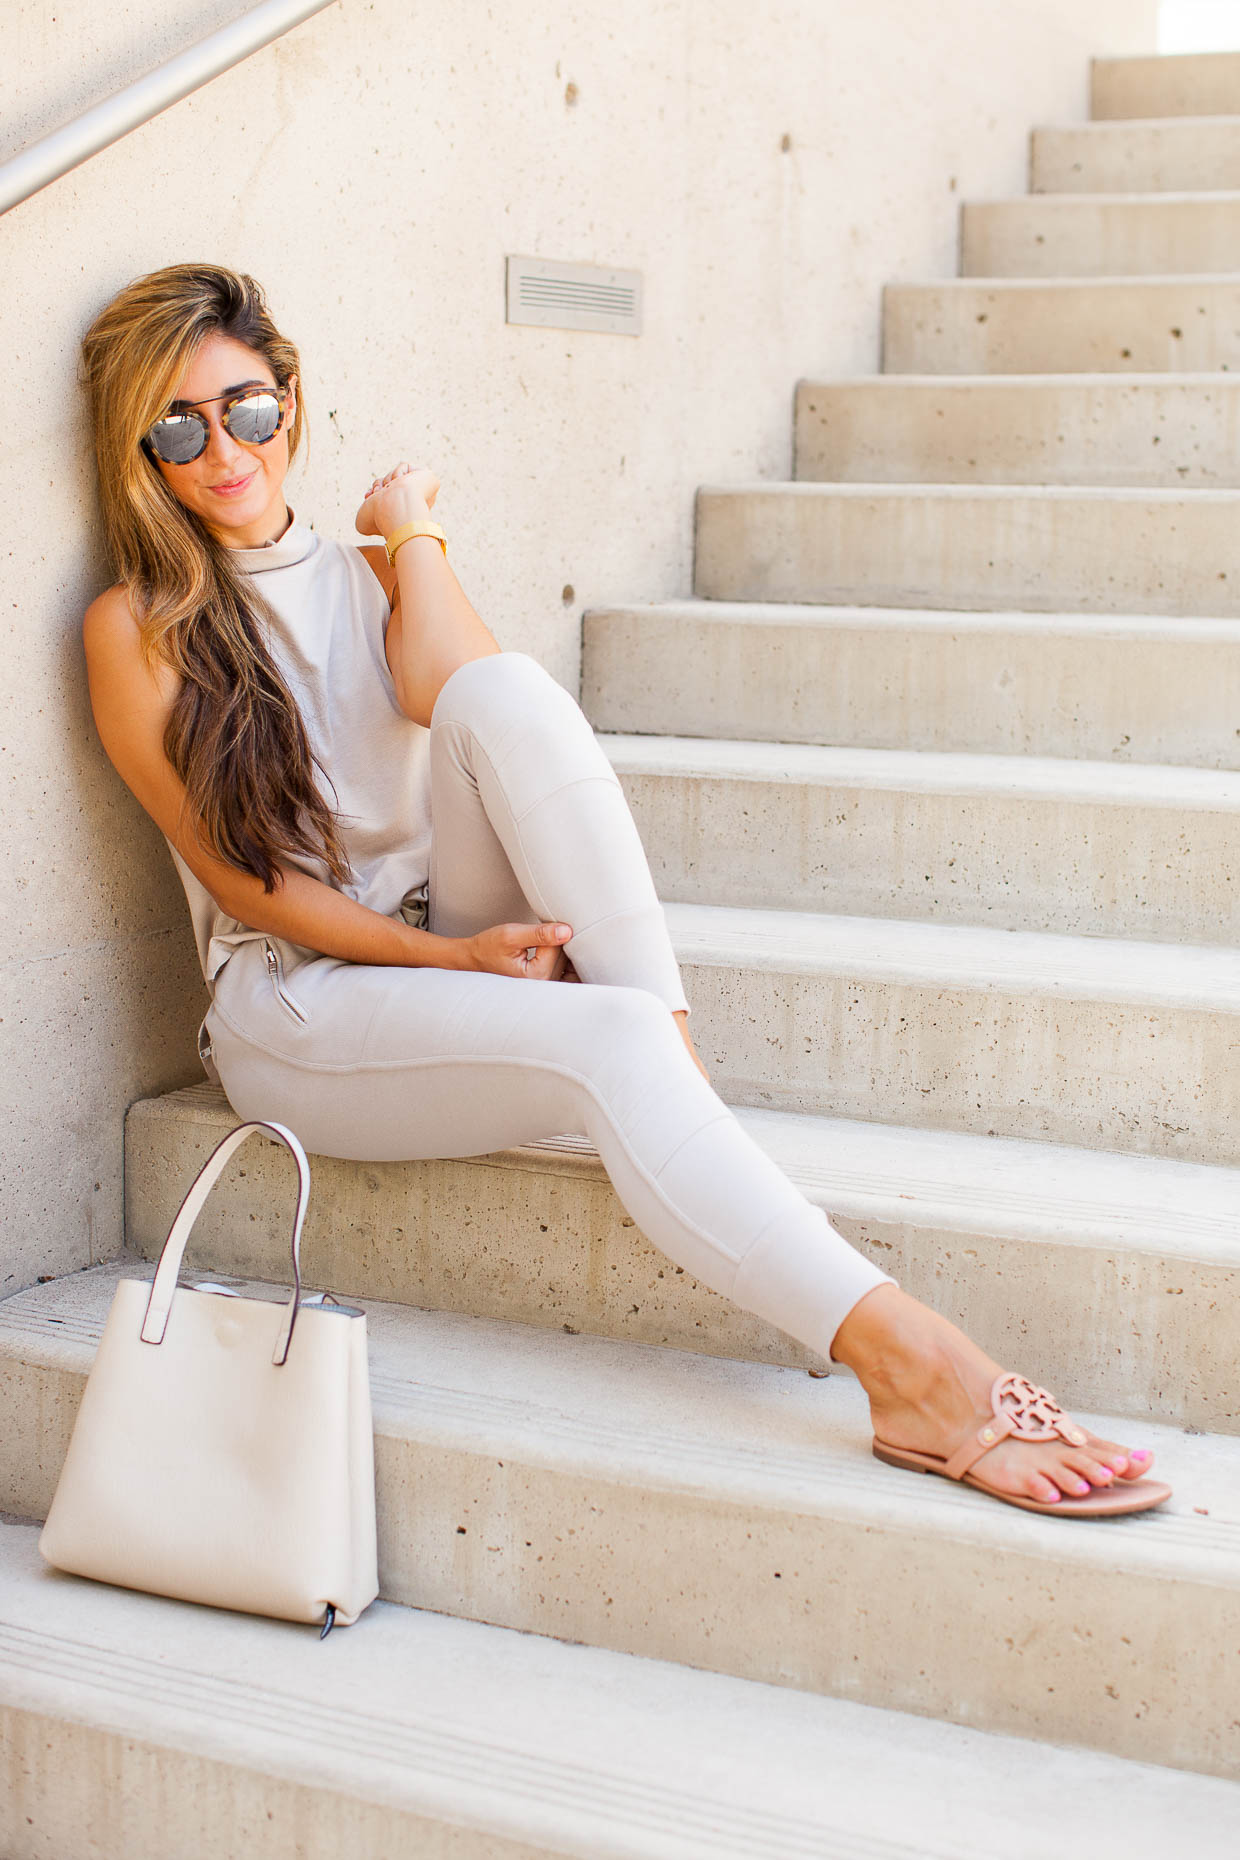 Fashion Blogger The Darling Detail is wearing a Leith Funnel Neck Tank, Sincerely Jules 'Lux' Skinny Cotton Jogger Pants, Westward Leaning Flower 1 Sunglasses, a Larsson & Jennings 'Lugano' Mesh Strap Watch, Tory Burch 'Miller' Flip Flops, holding a Street Level Reversible Faux Leather Tote.